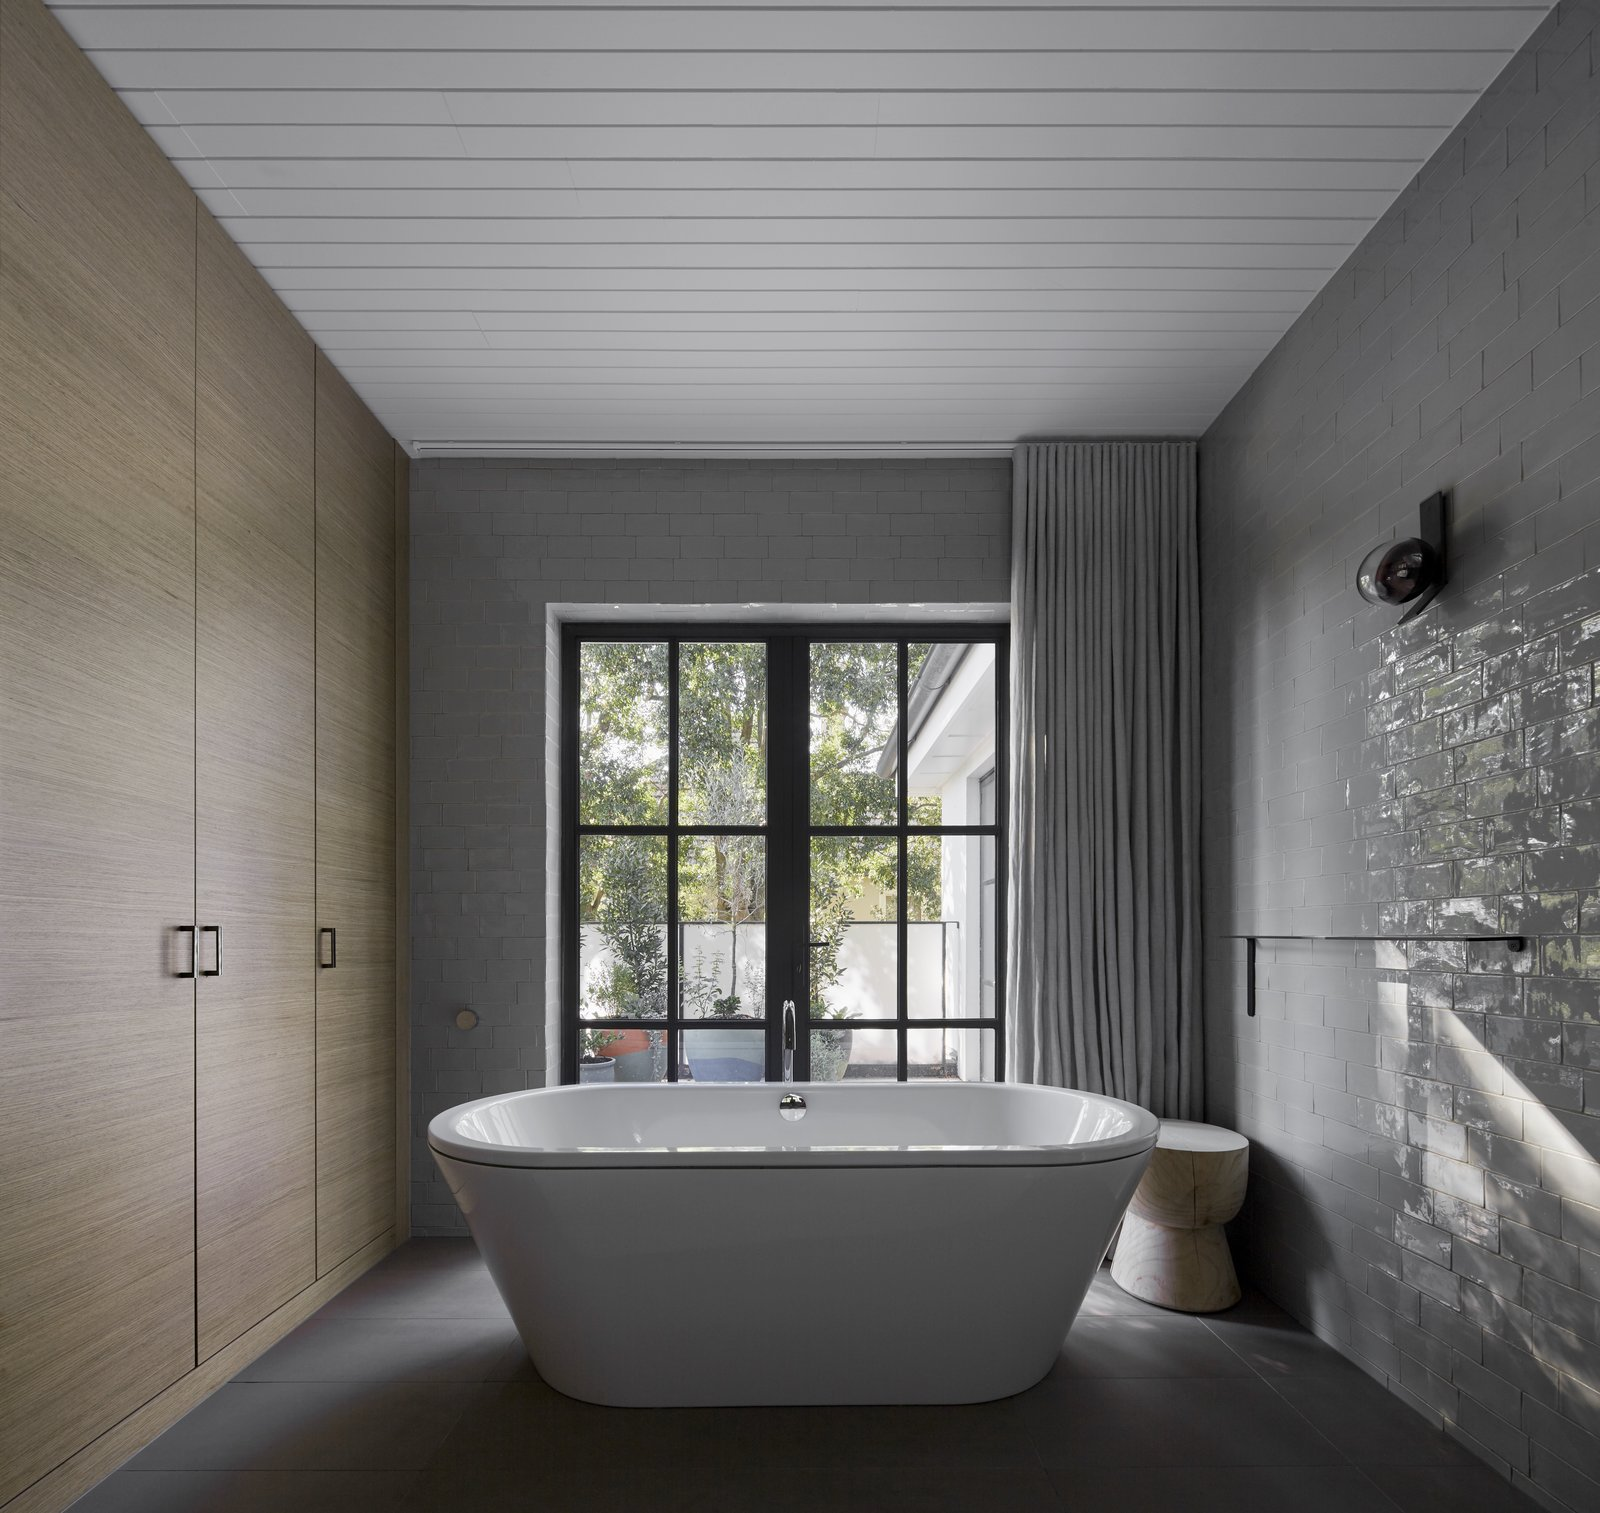 Bath Room, Freestanding Tub, and Wall Lighting  Photo 11 of 11 in See How Sliding-Glass Pavilions Transformed a Renovated Melbourne Home